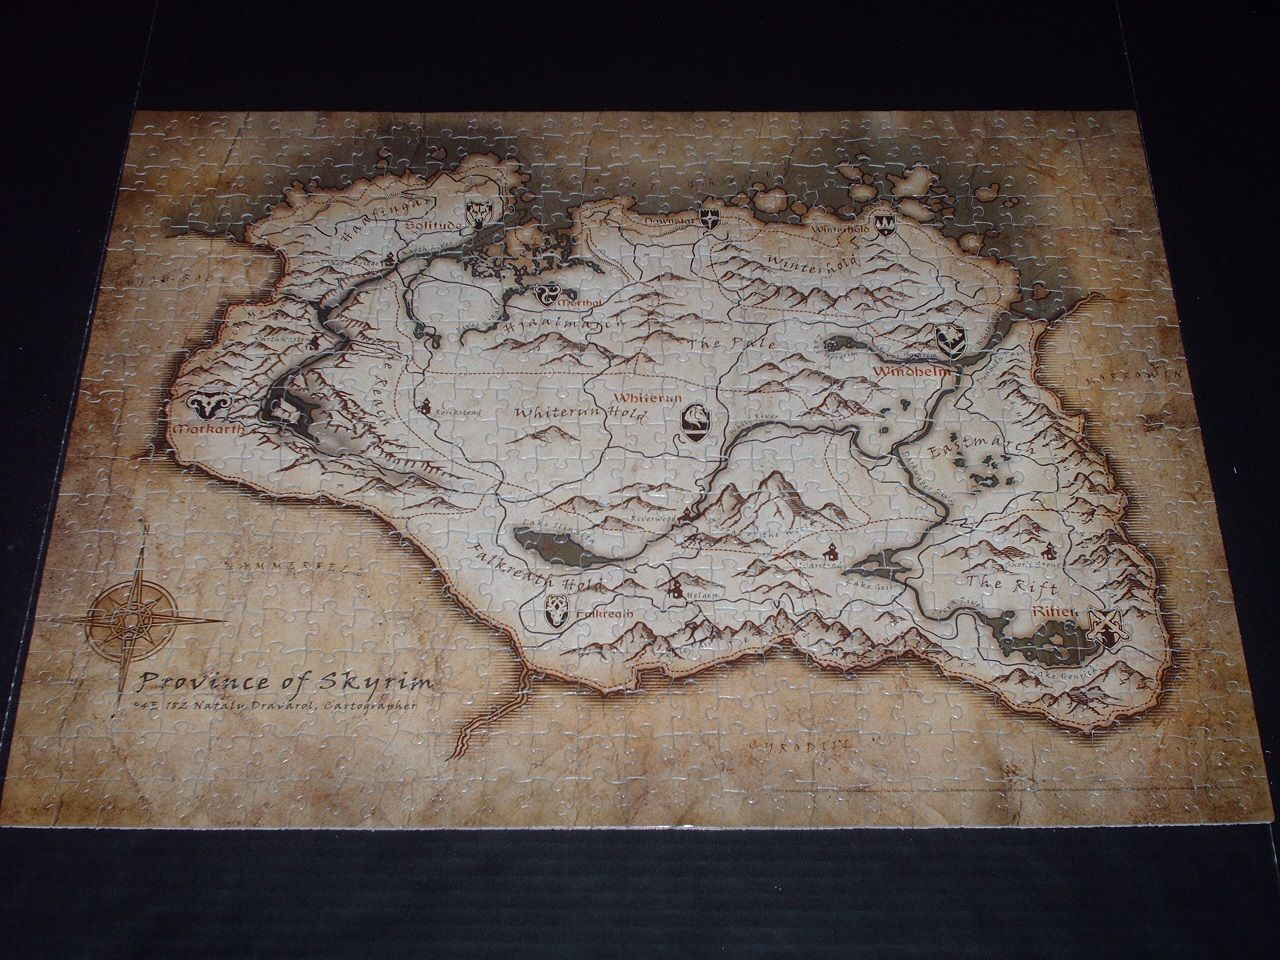 Jigsaw review the elder scrolls v skyrim map puzzle toys jigsaw review the elder scrolls v skyrim map puzzle gumiabroncs Gallery